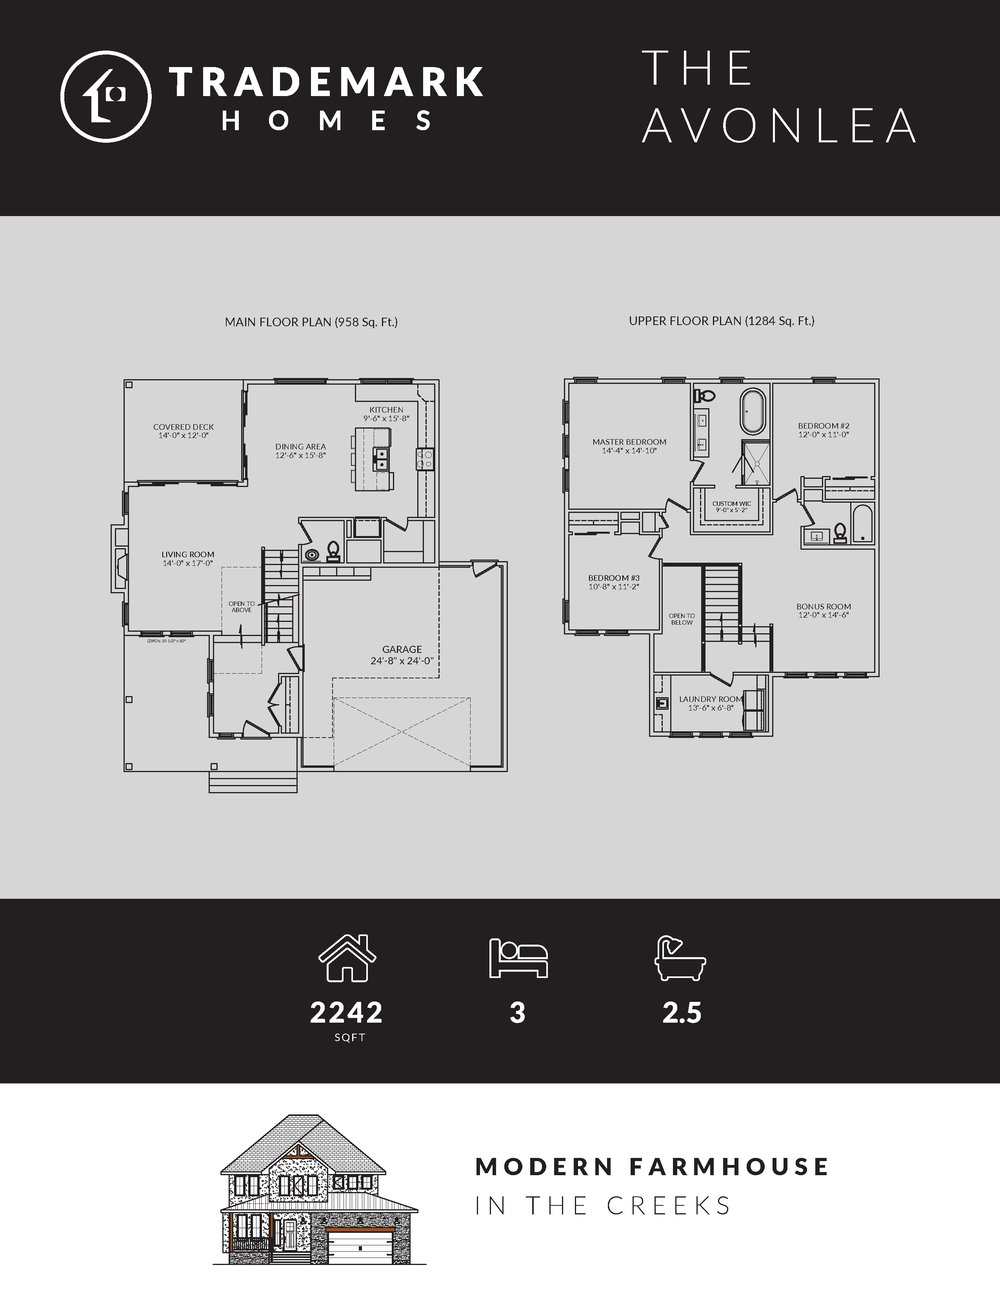 Trademark Homes Floor Plan The Avonlea